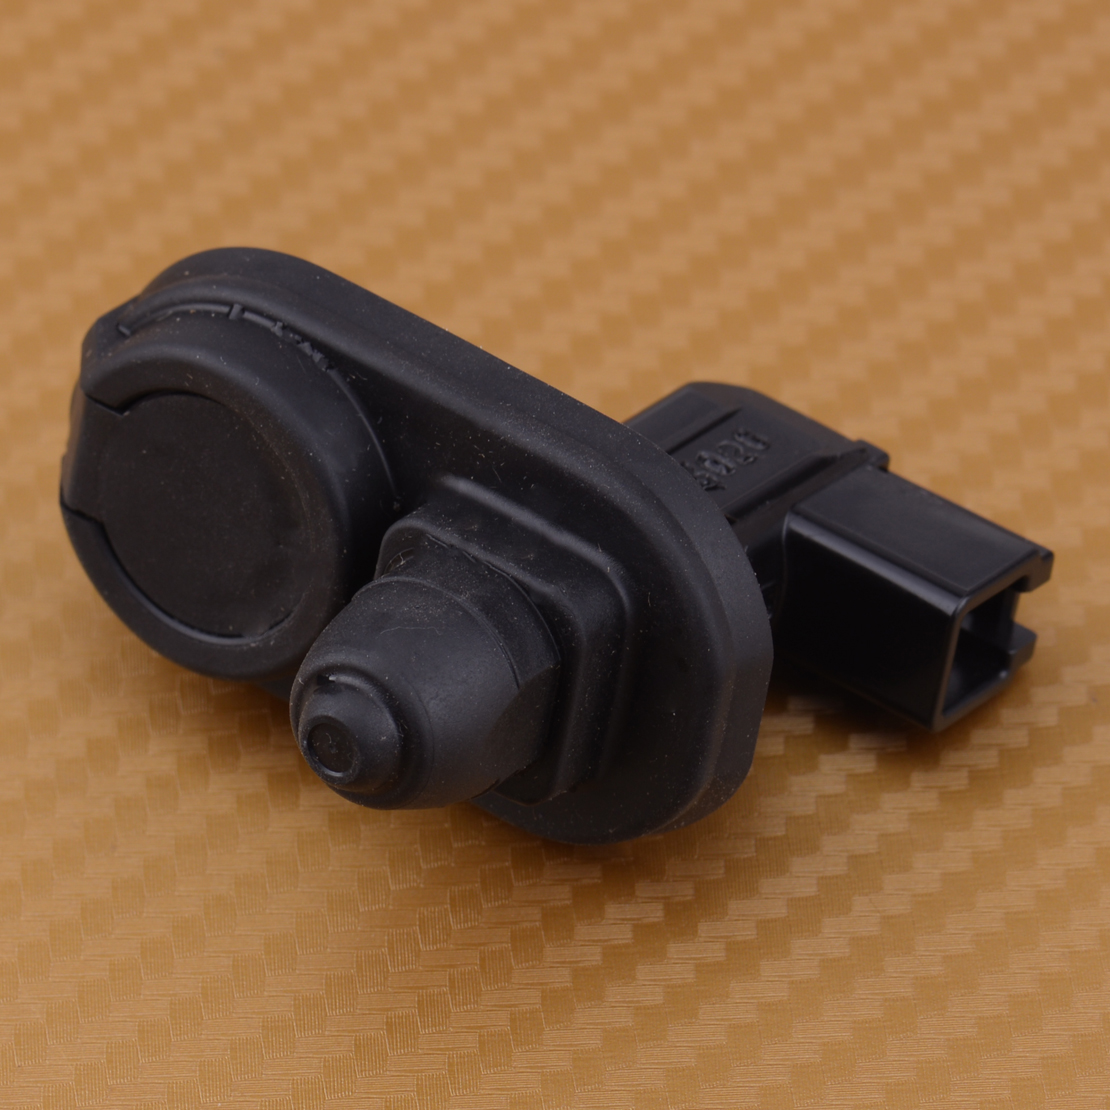 DWCX 1 Pin <font><b>Door</b></font> Jamb Light Lamp Switch Fit For Honda Accord <font><b>Civic</b></font> CR-V Crosstour Element Odyssey image